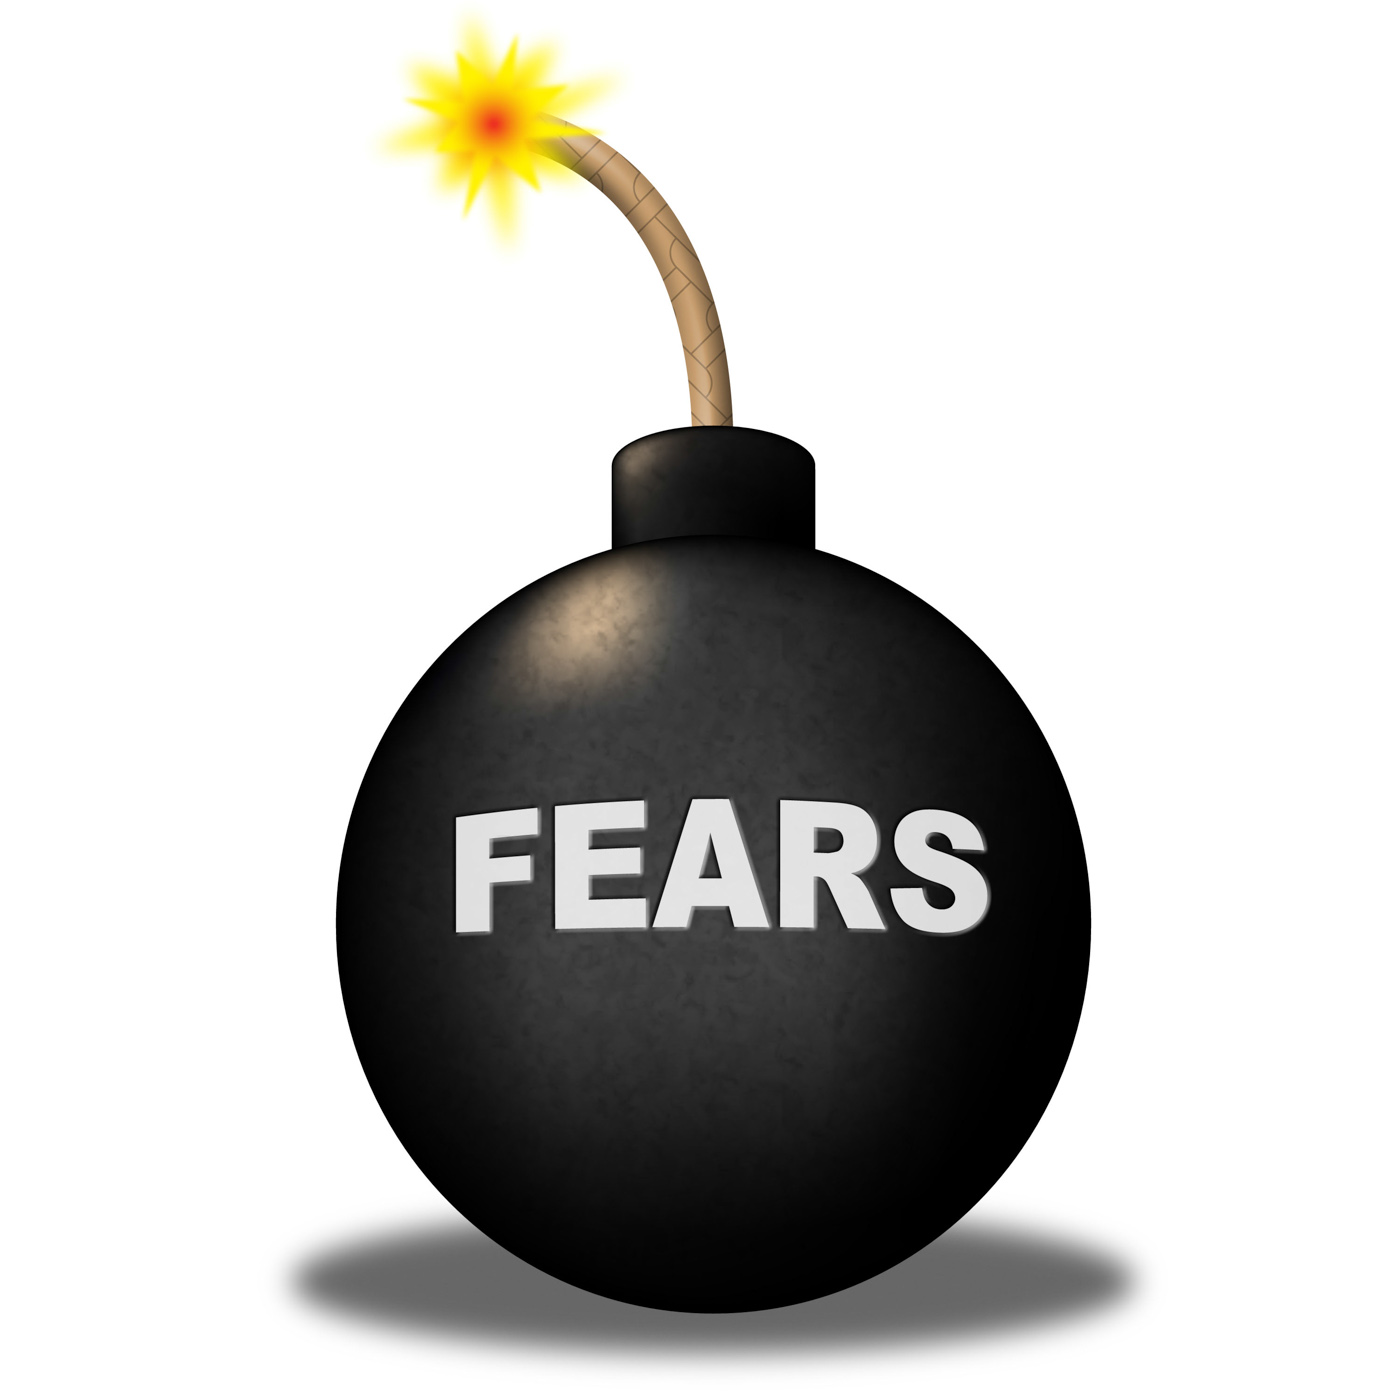 Fears alert shows frightened worry and explosive photo